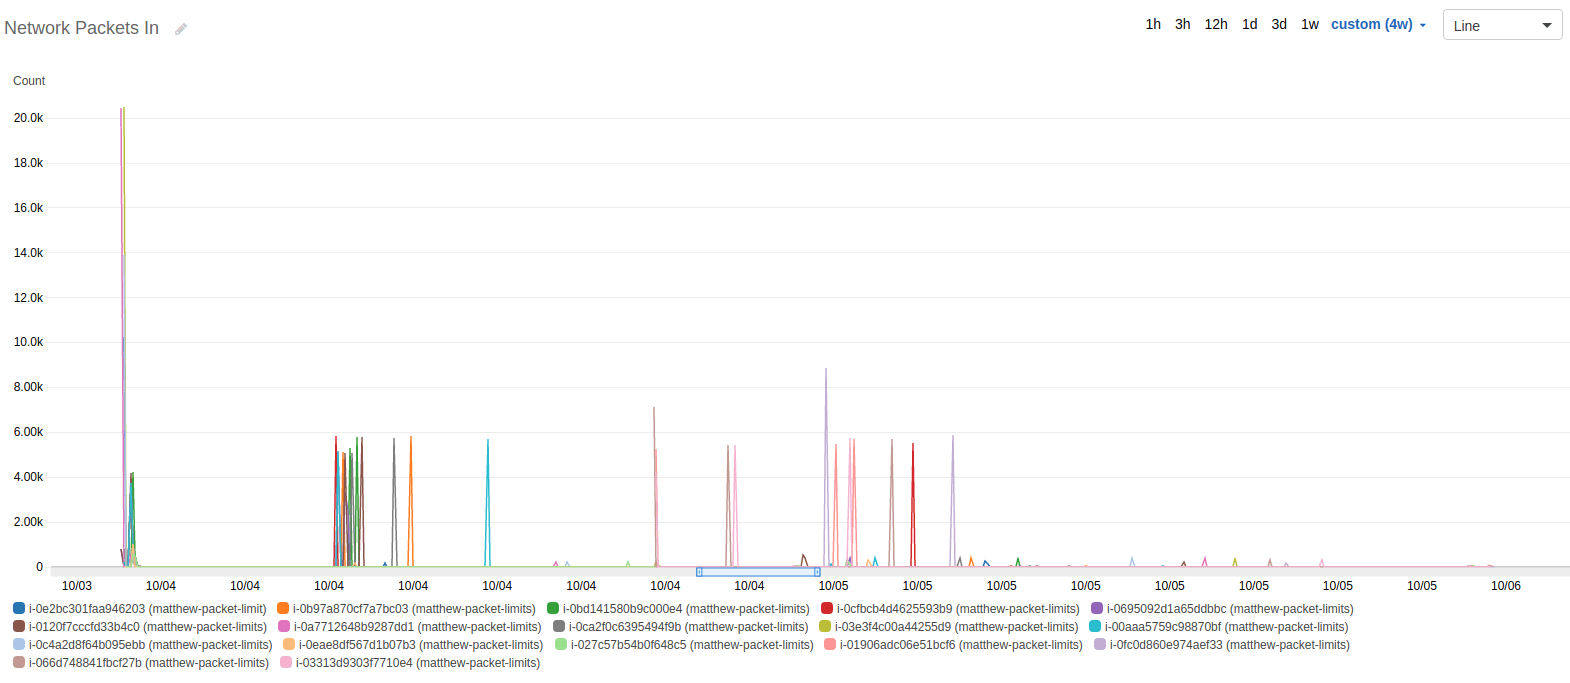 AWS Cloudwatch graph of Network Packets In during test